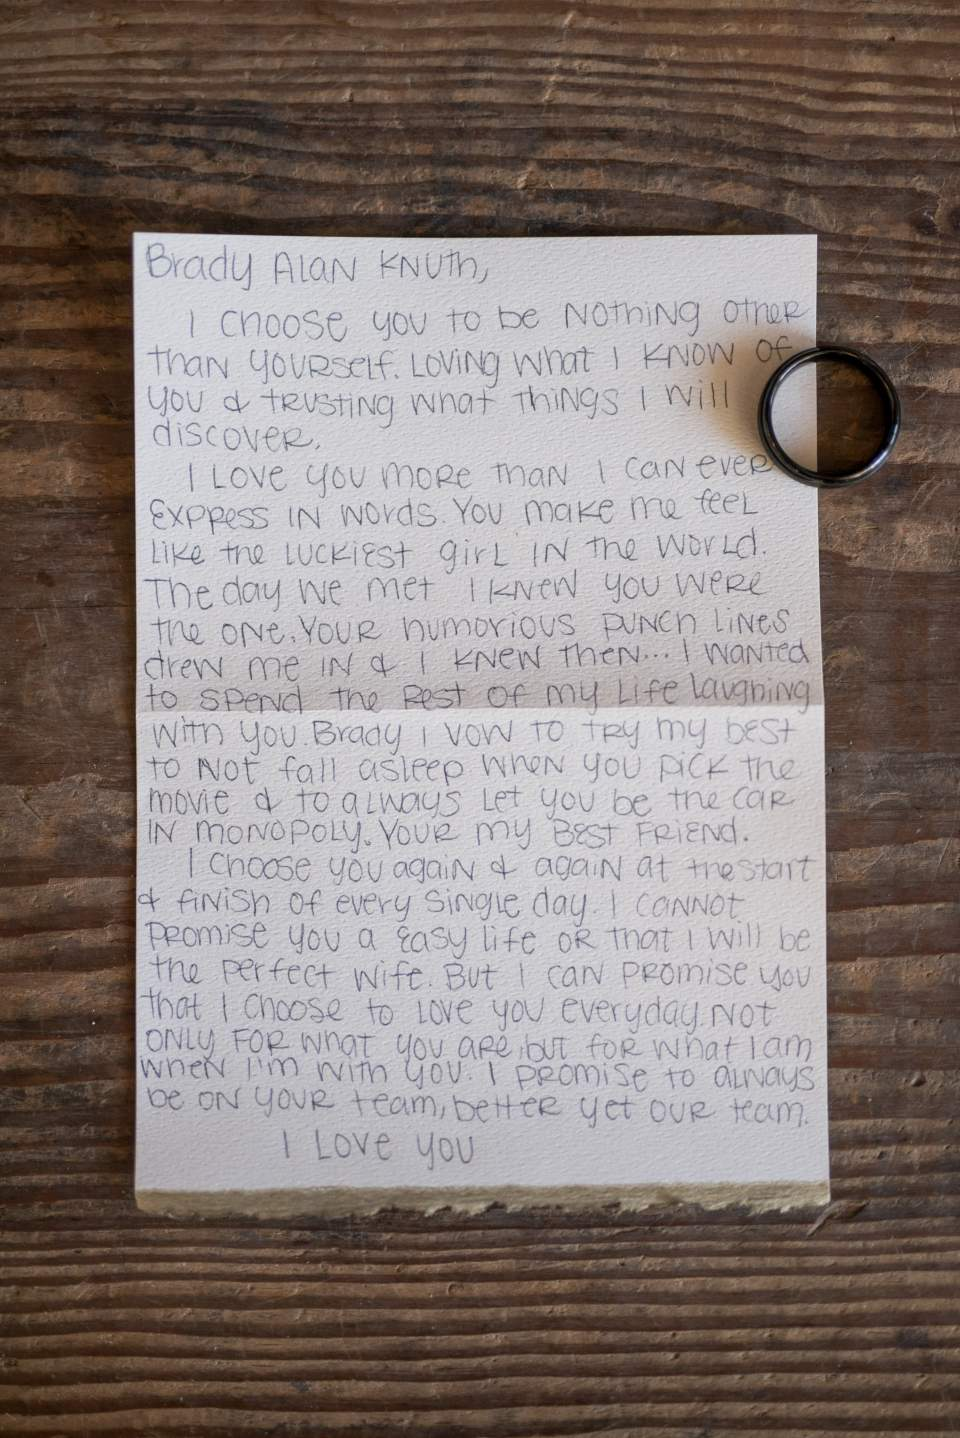 grooms ring and wedding vows